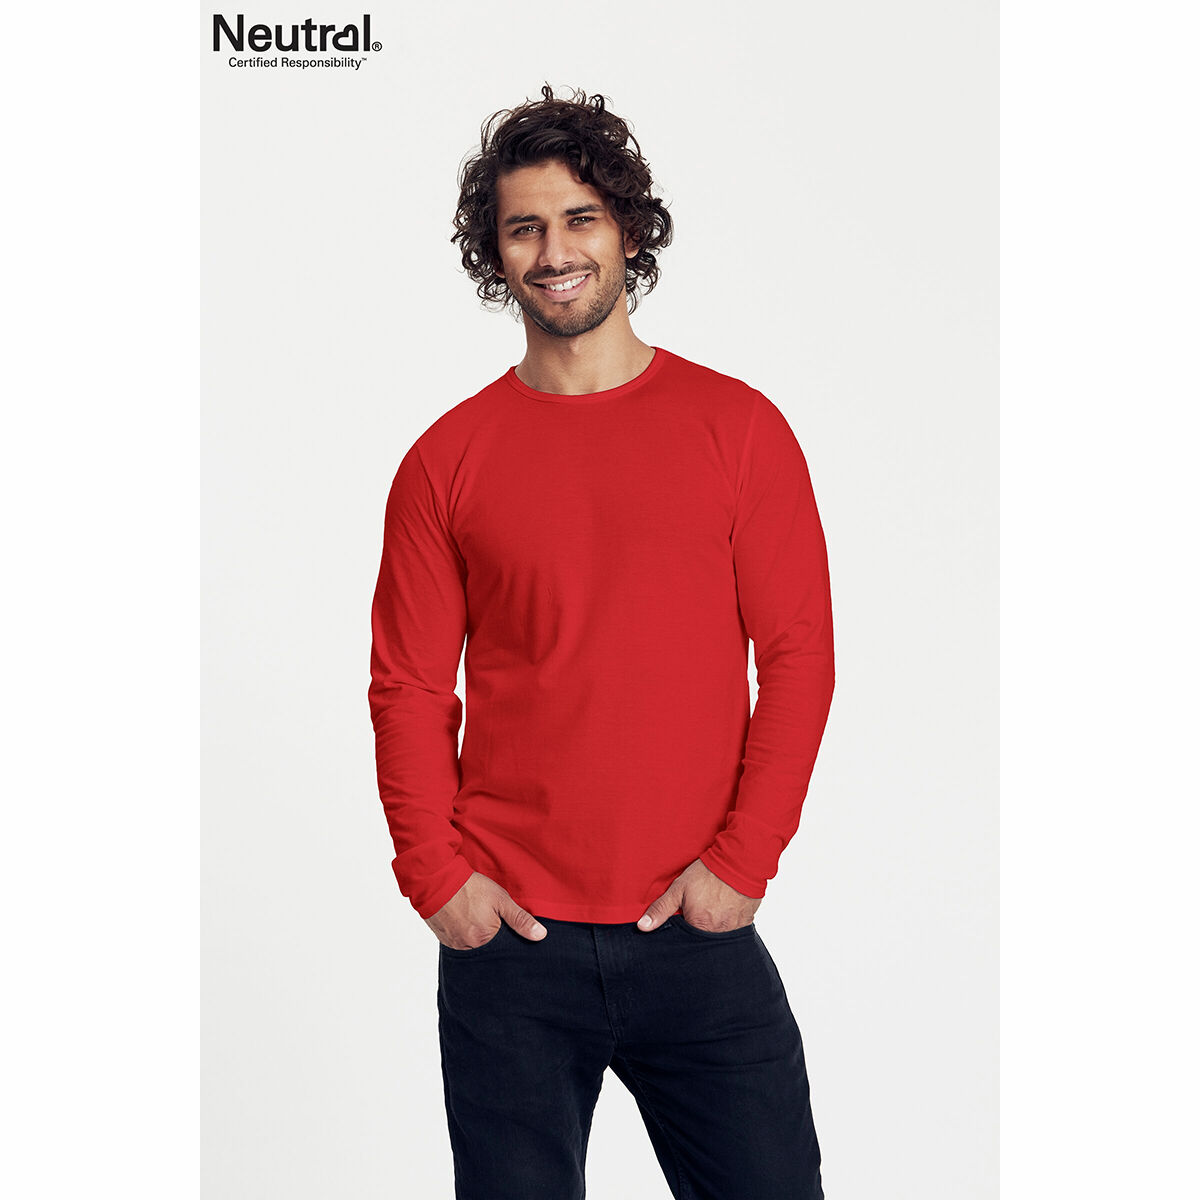 Neutral Long Sleeve Organic Men's T-shirt Red